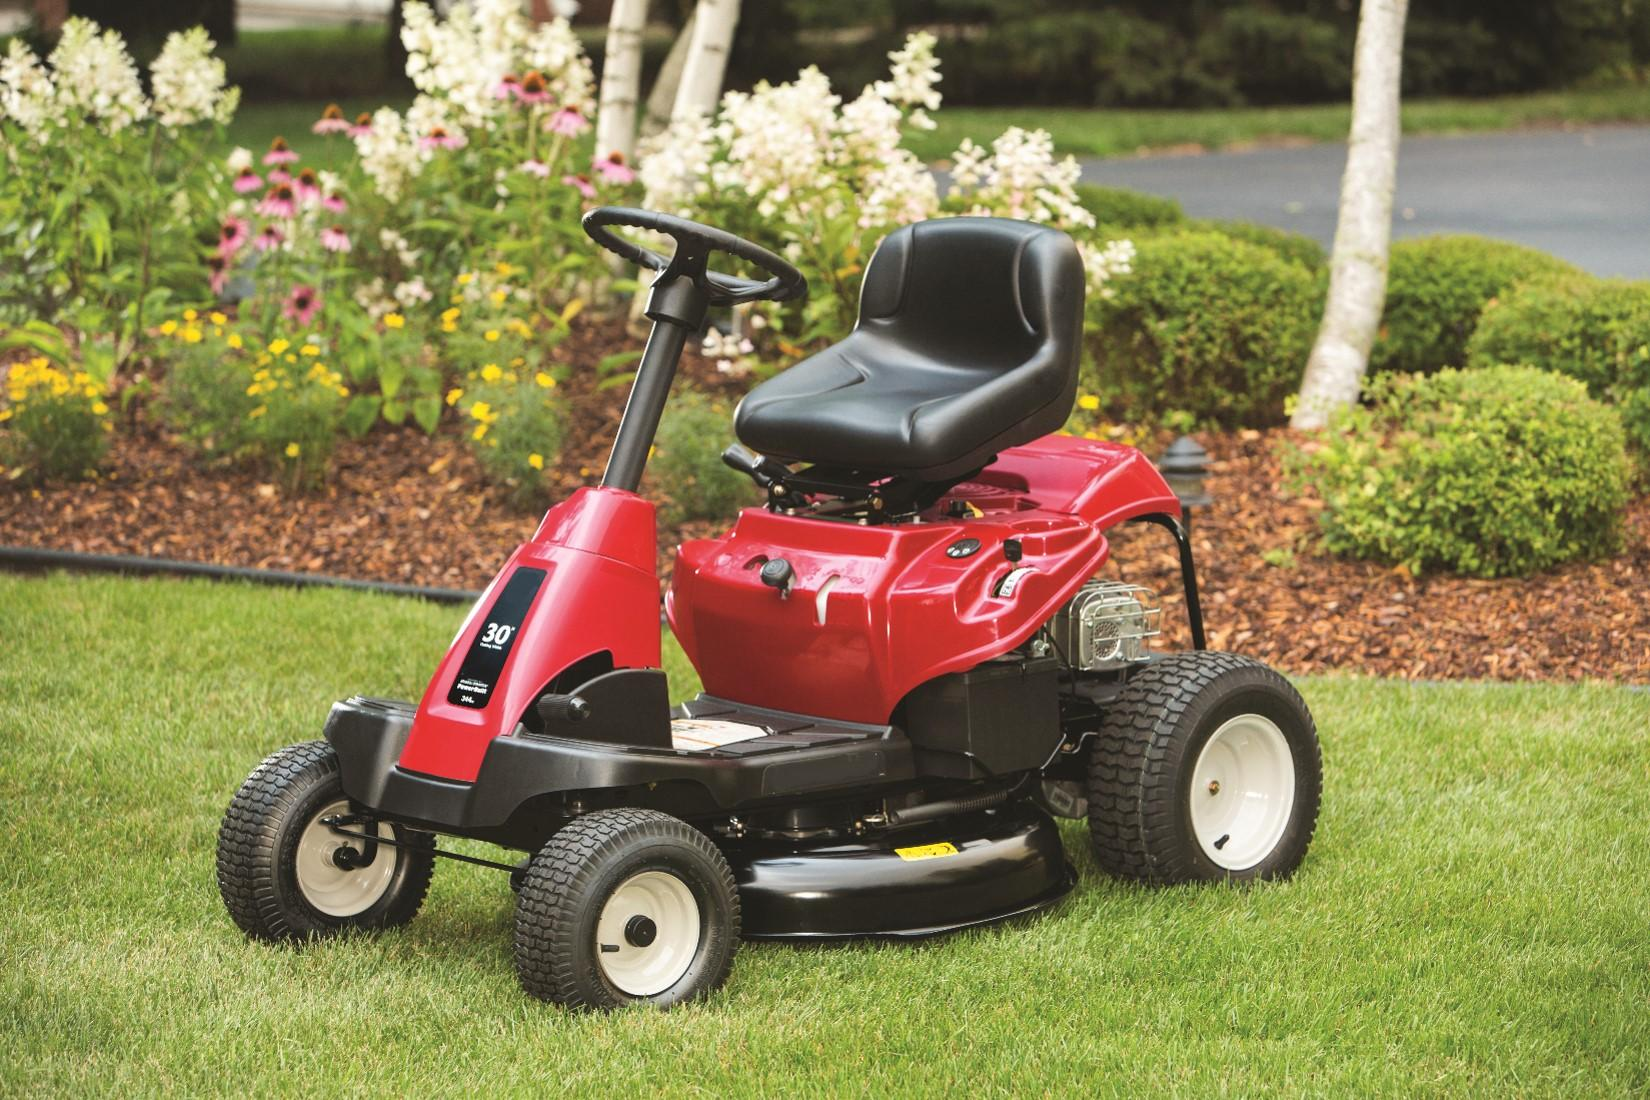 Craftsman ride on mower for sale car interior design - Lawn mower for small spaces decor ...